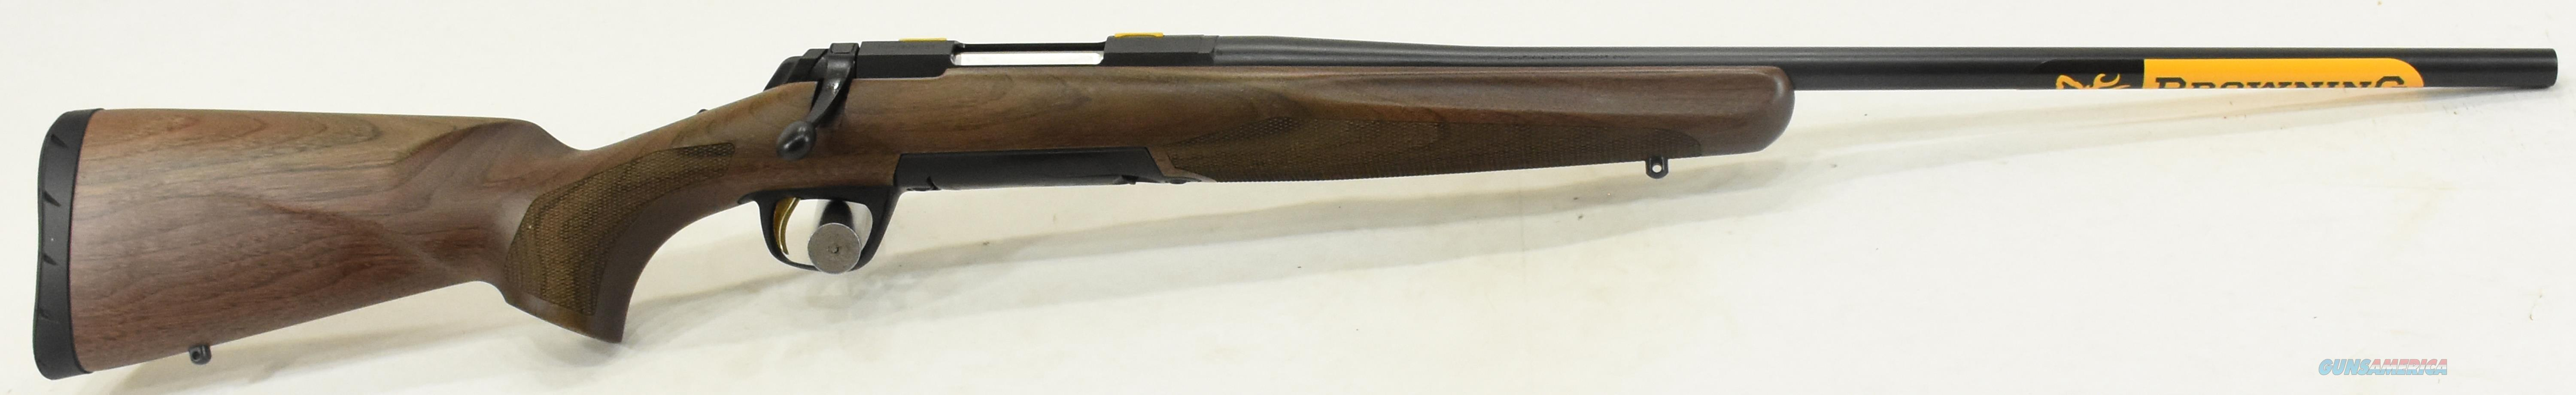 Xbolt Hunter Walnut 6.5CM 22In 035208282  Guns > Rifles > Browning Rifles > Bolt Action > Hunting > Blue